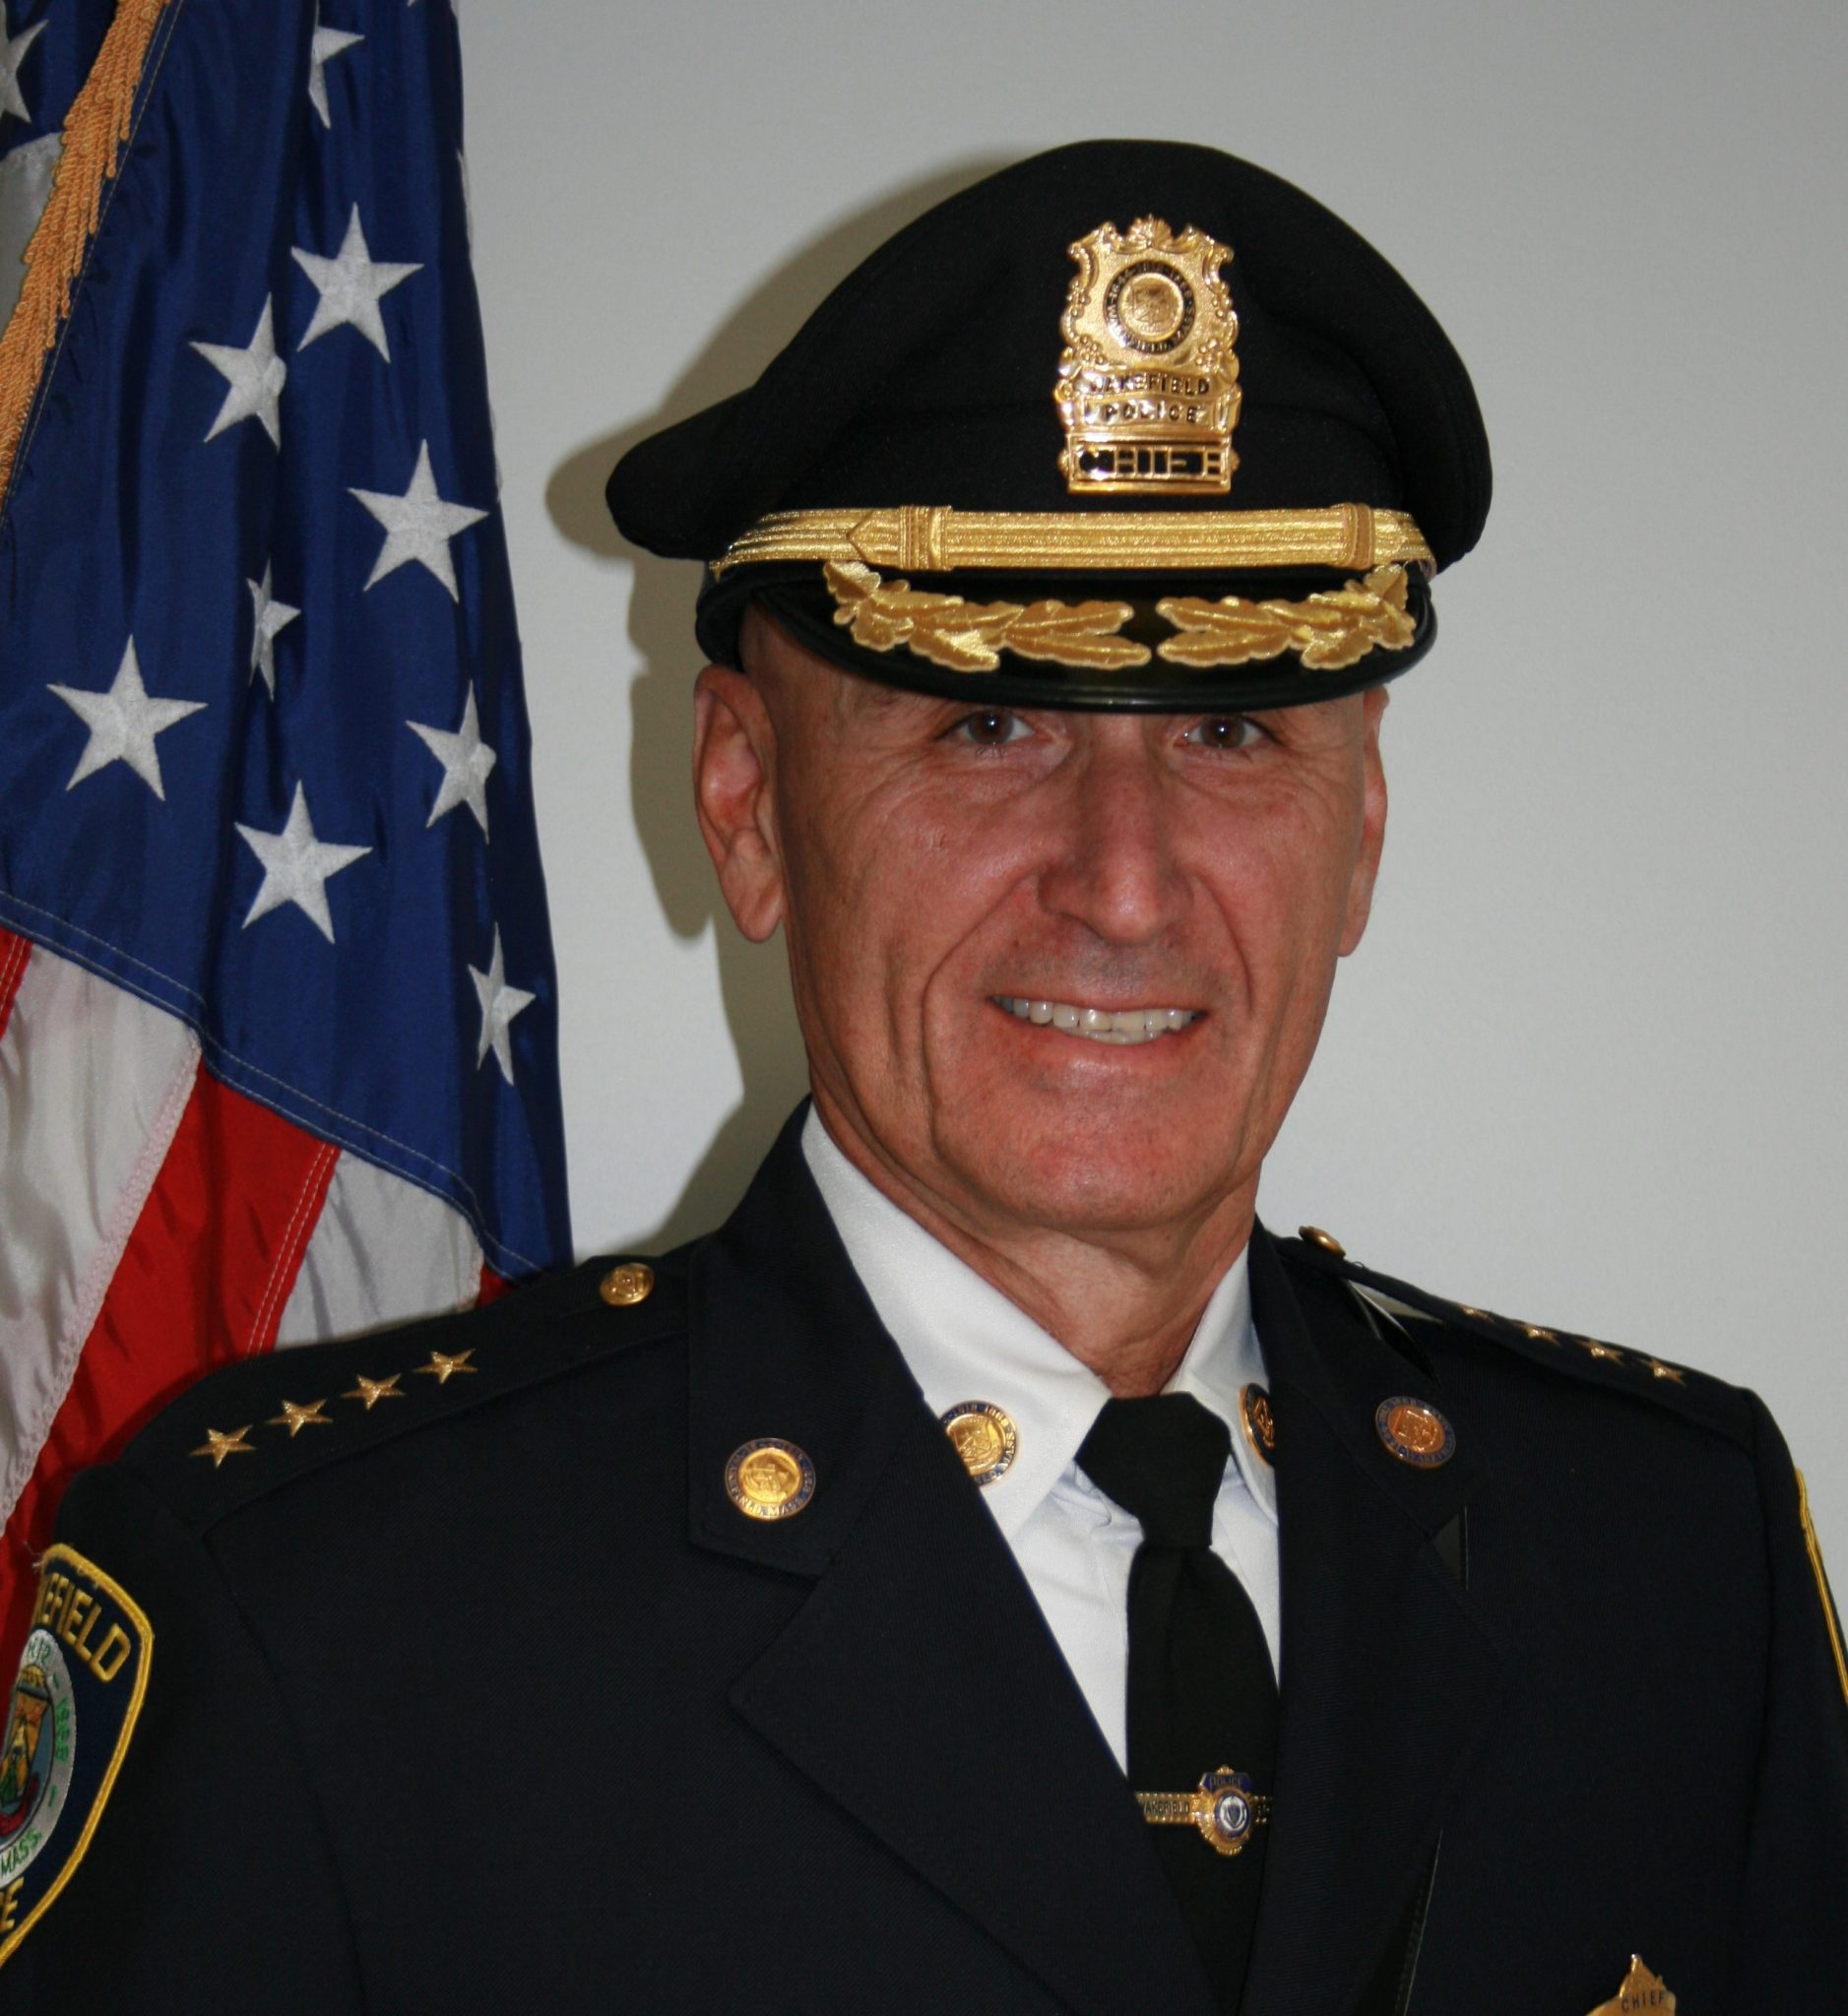 Chief Richard Smith